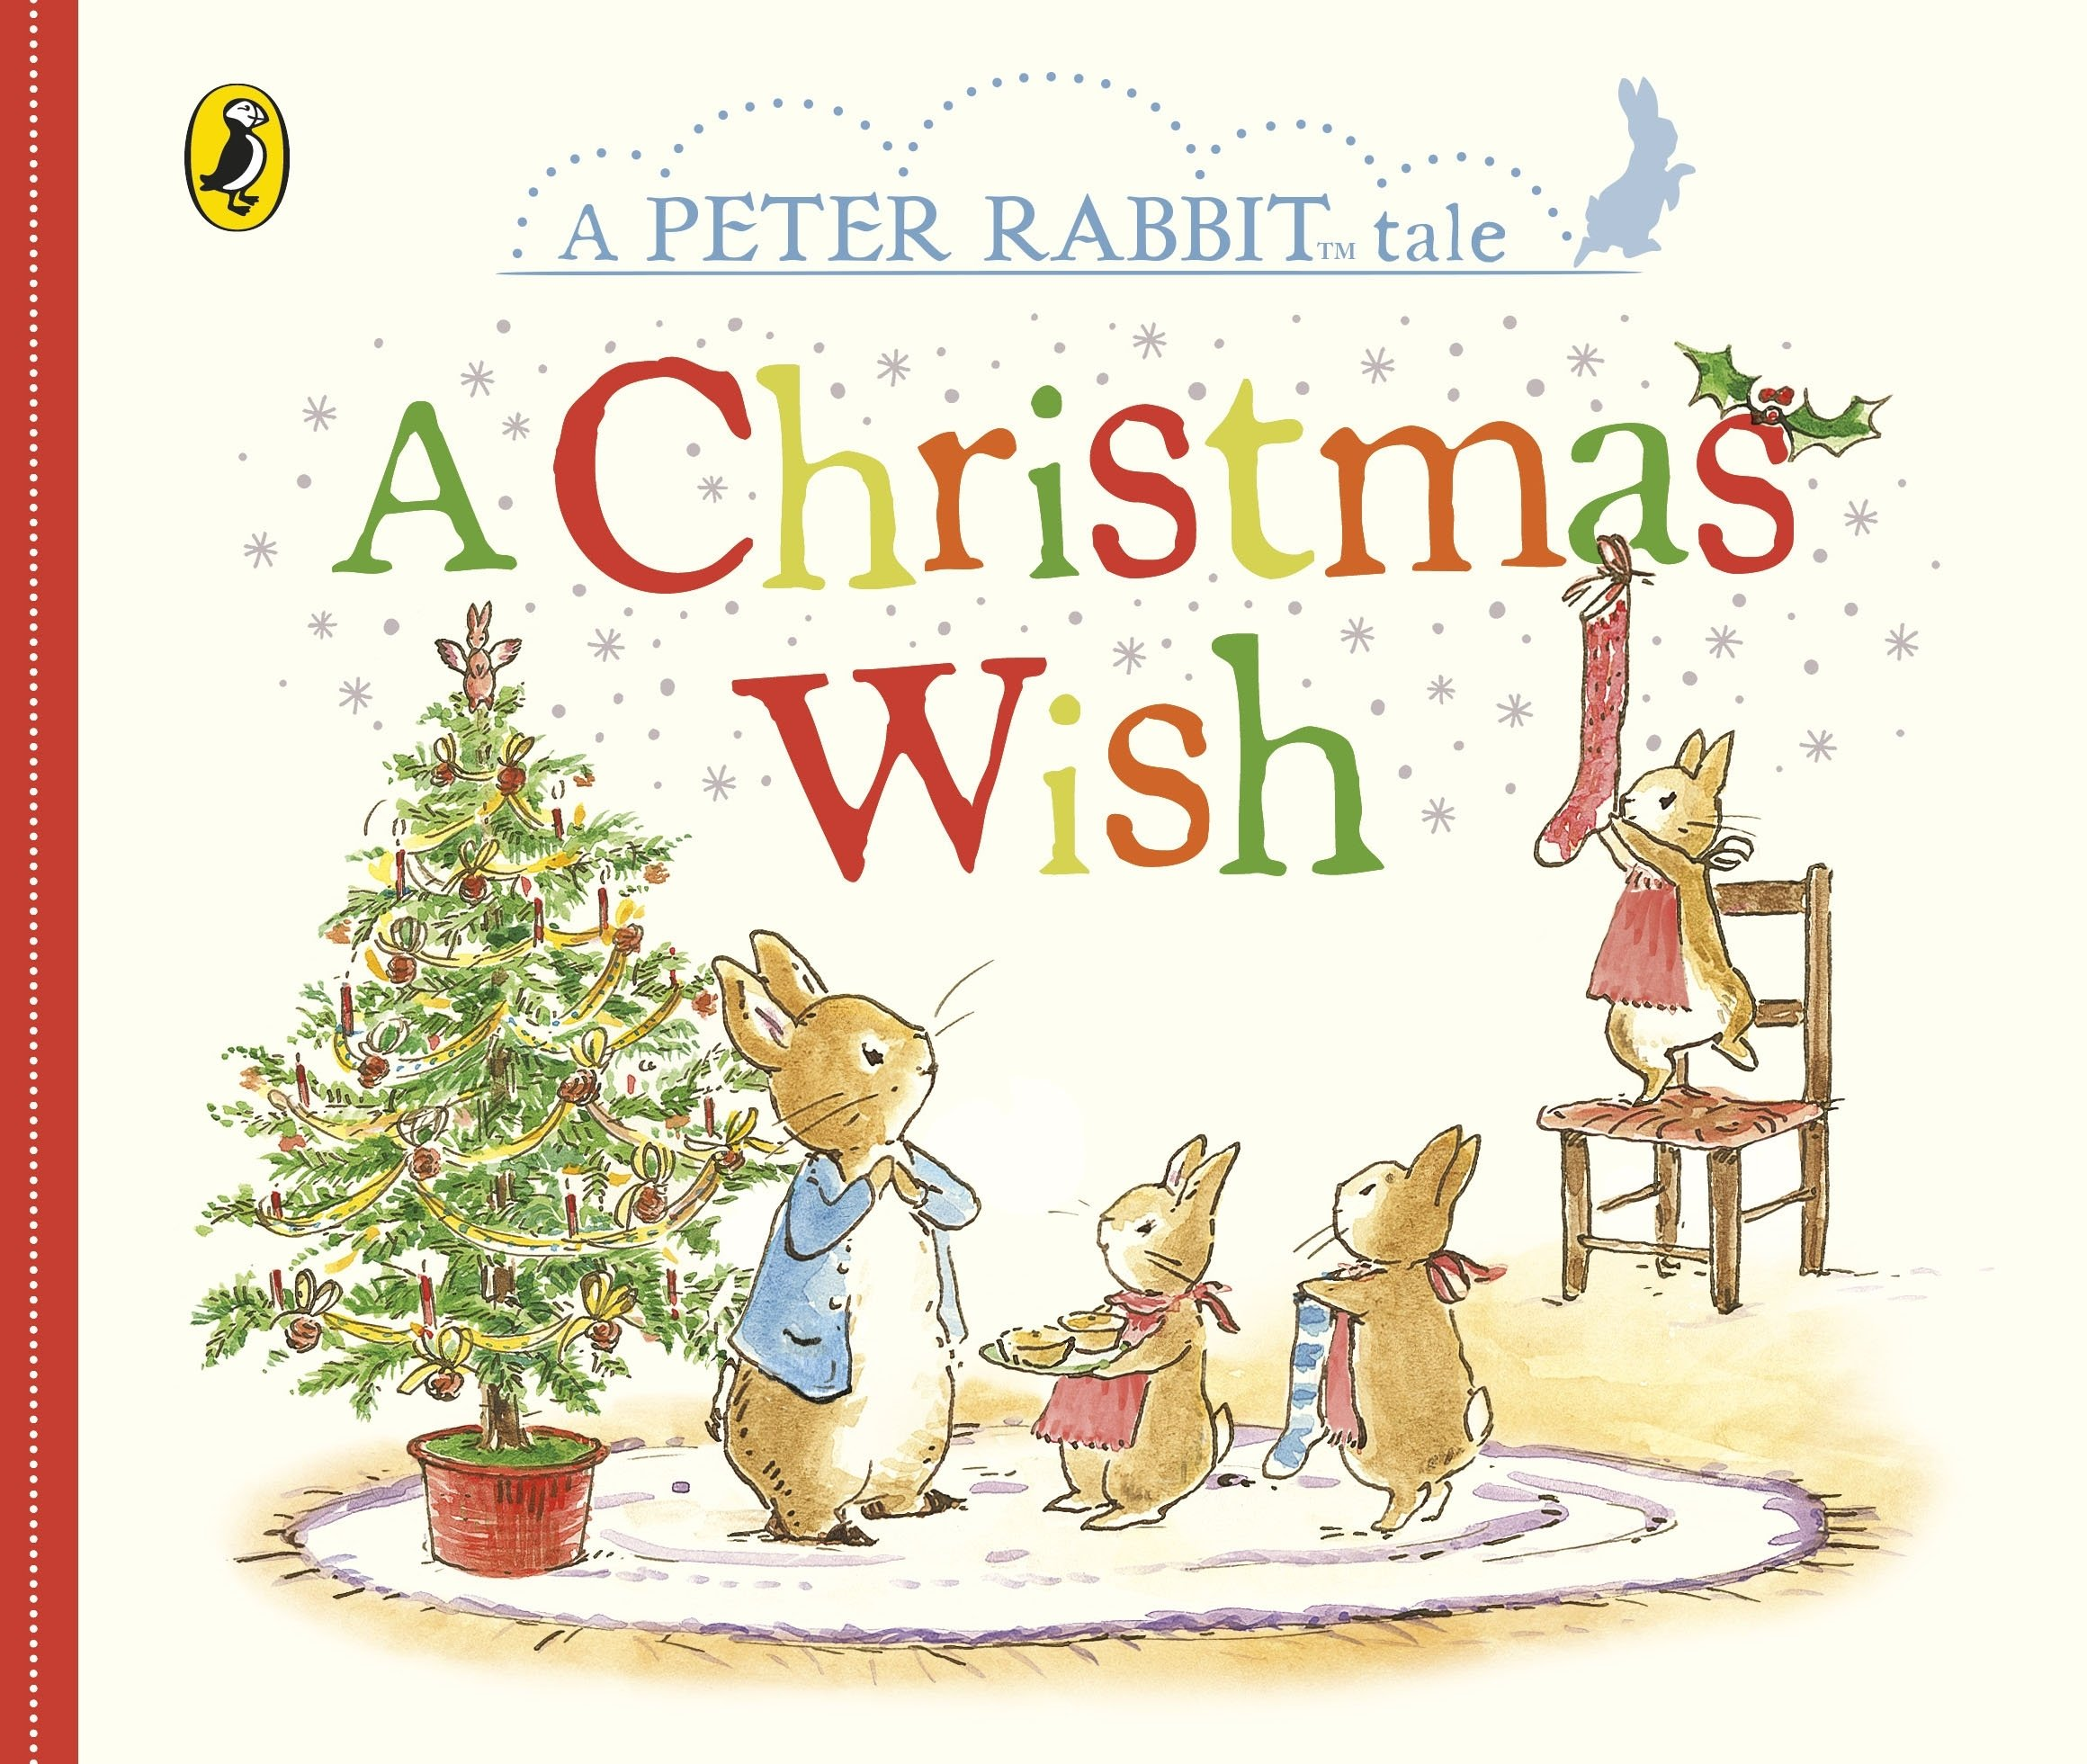 Peter Rabbit: A Christmas Wish (Peter Rabbit Tales): Amazon.de ...